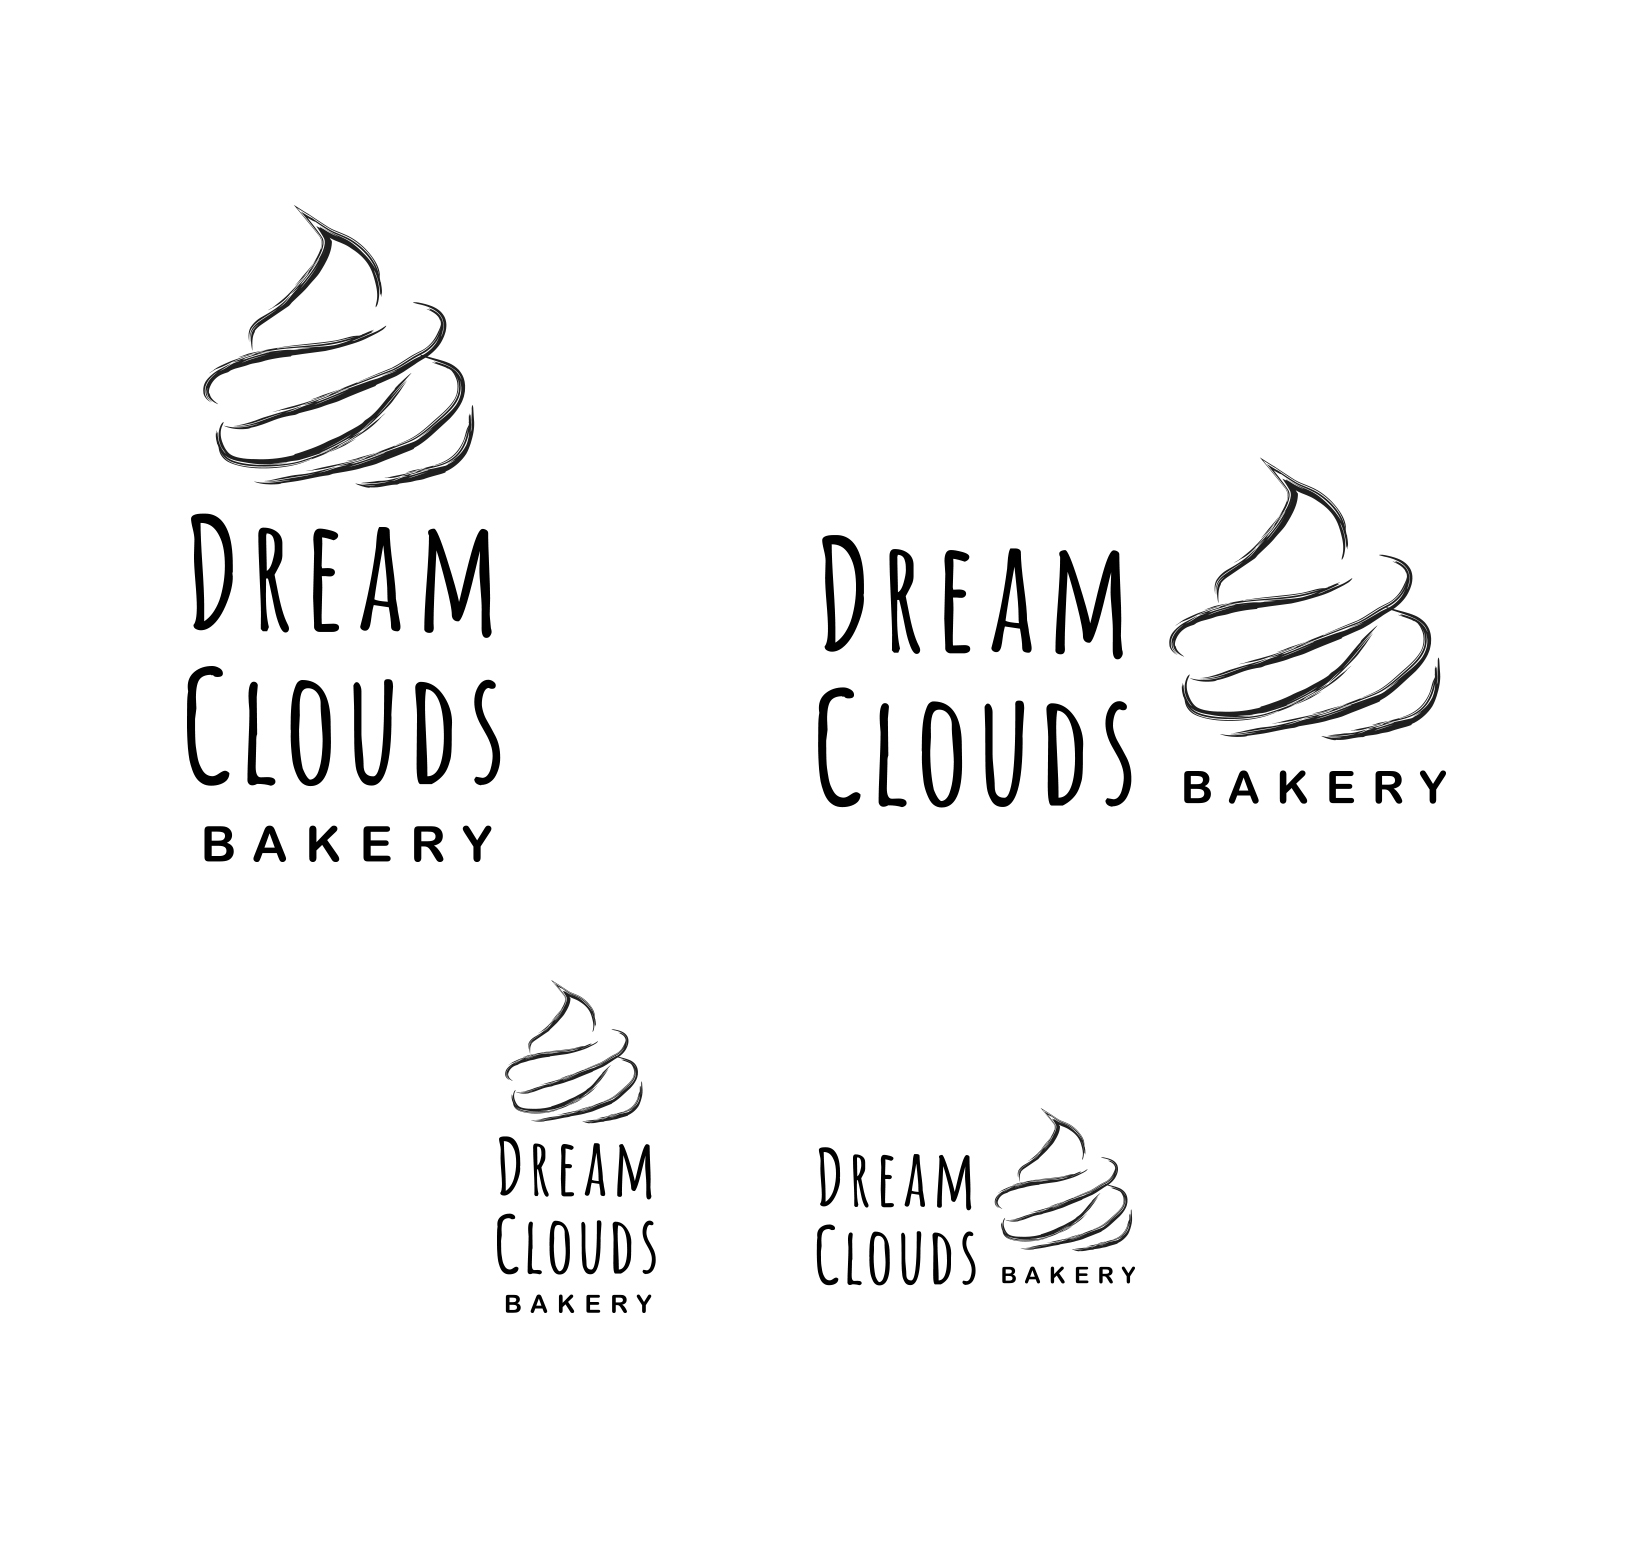 Portfolio_Dream Clouds 4.png